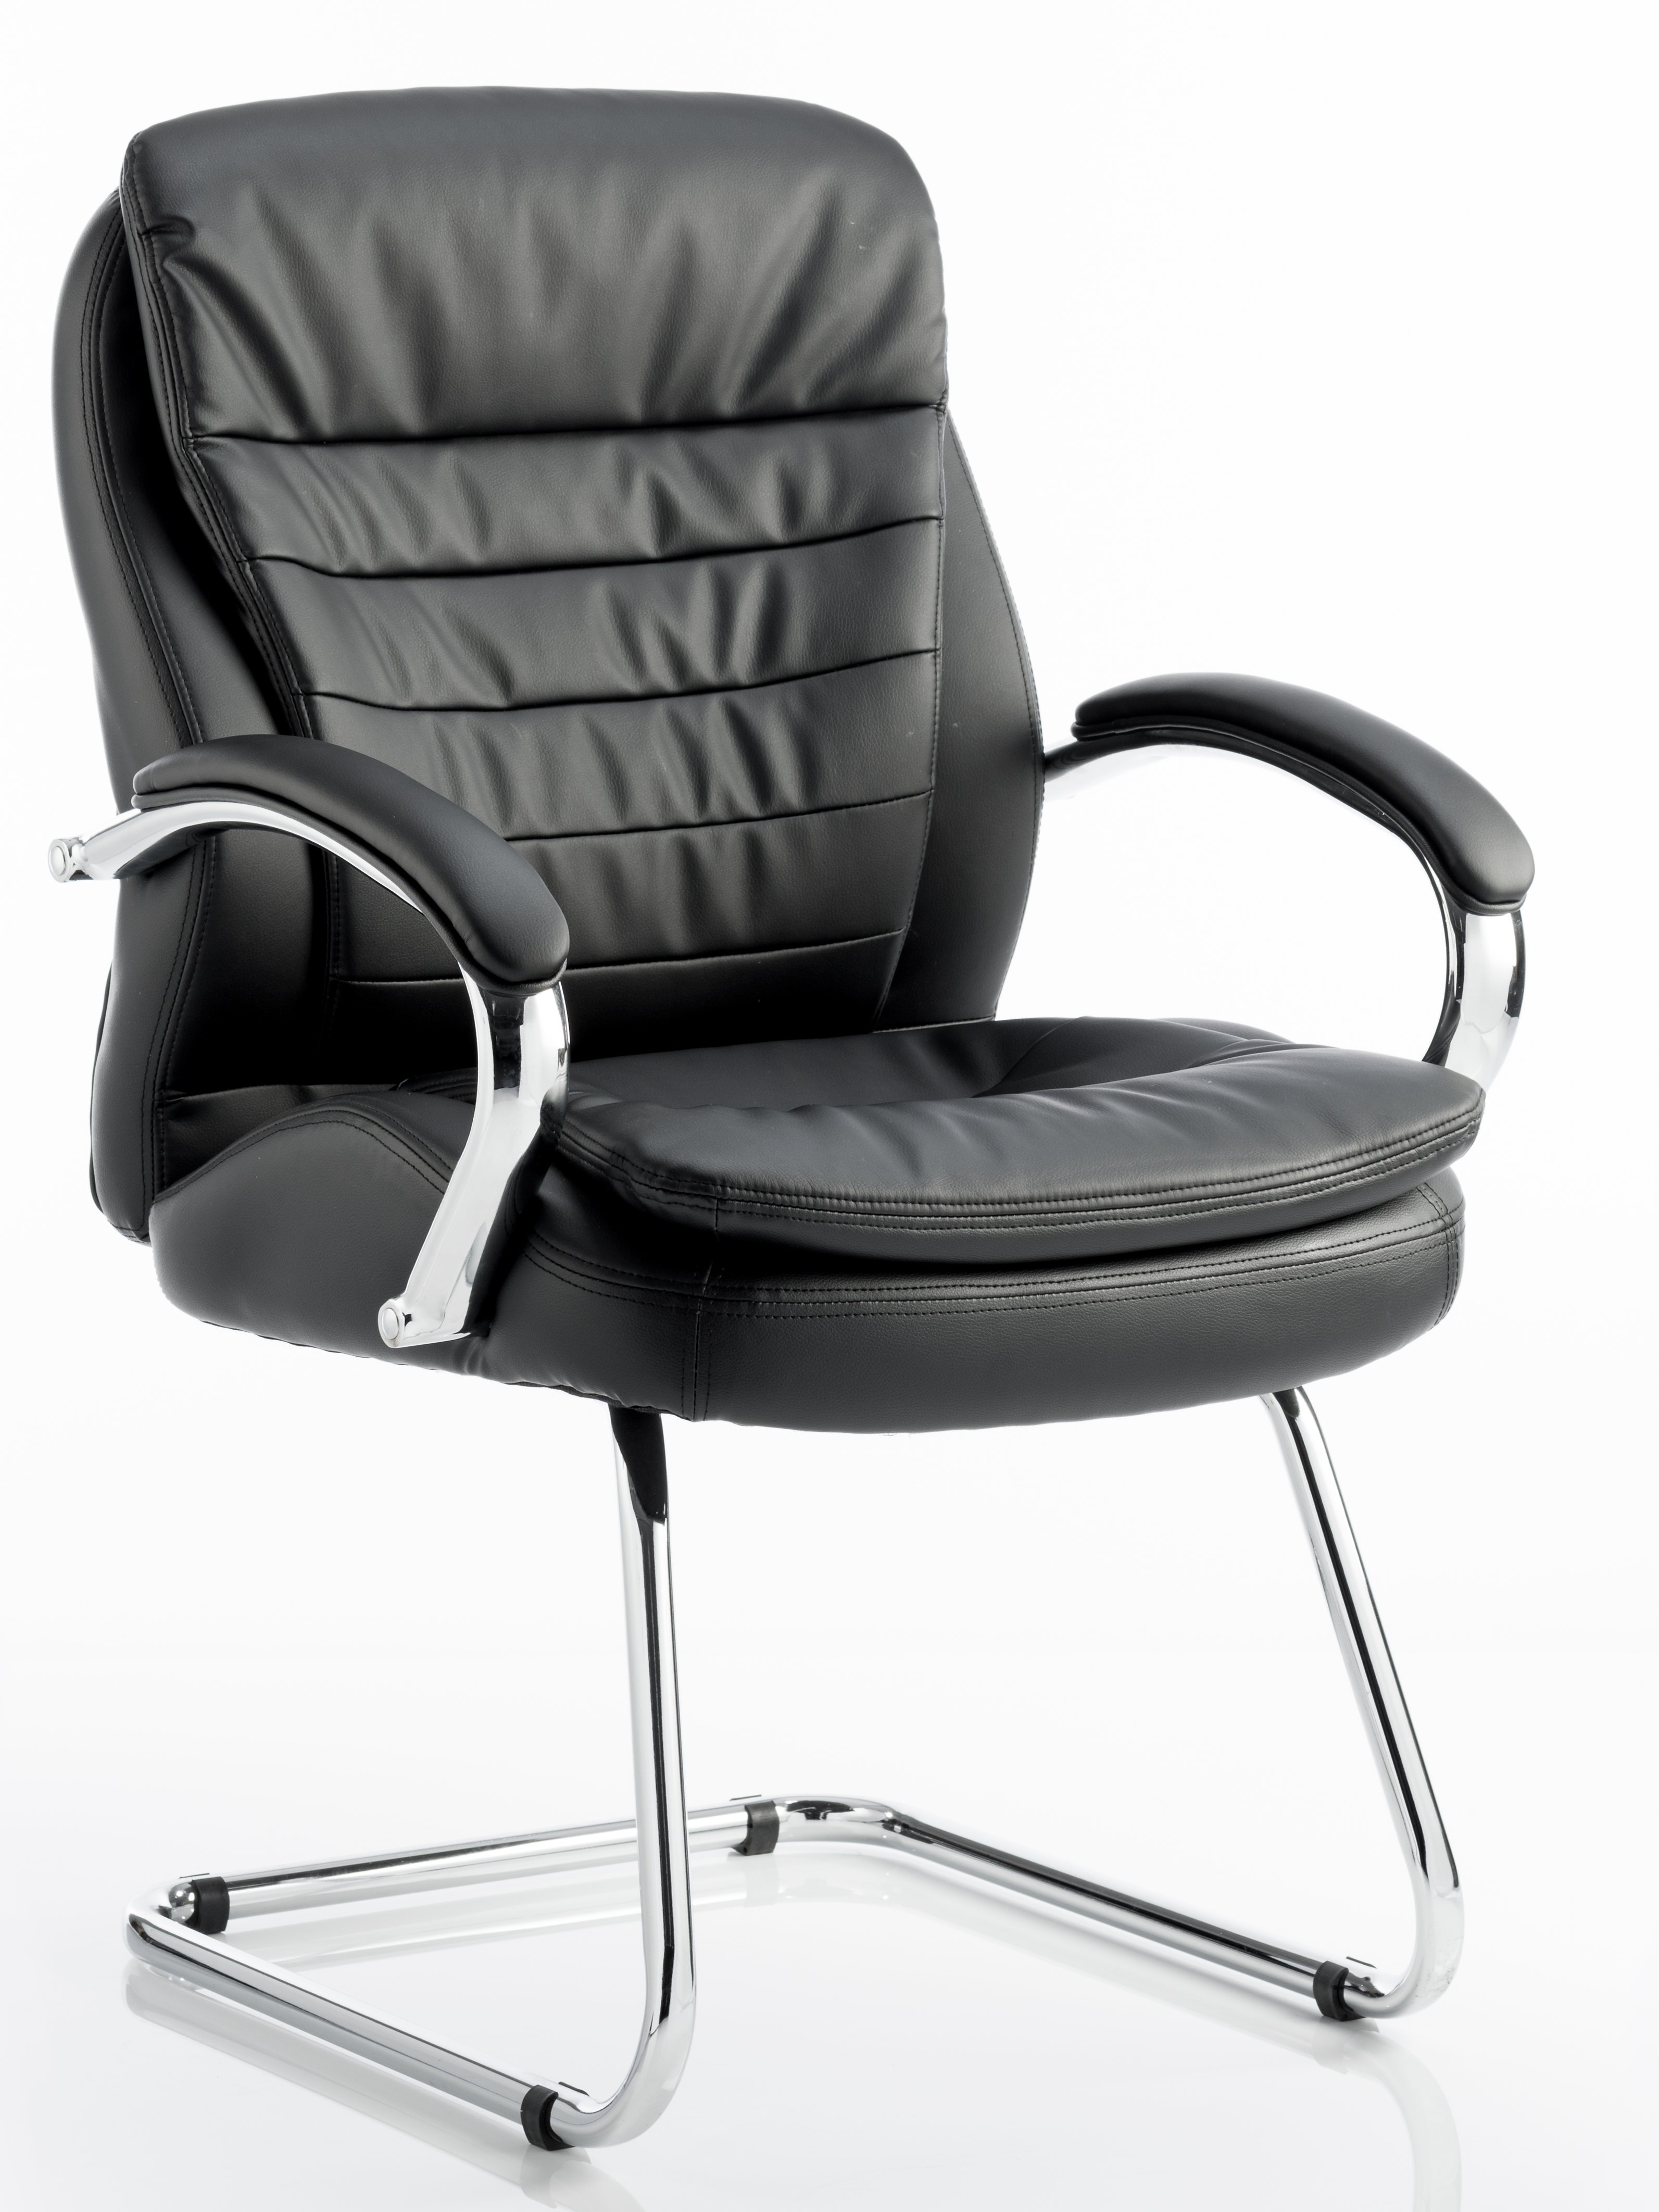 Roam cantilever frame chair in black bonded leather with integrated arms and sculptured backrest